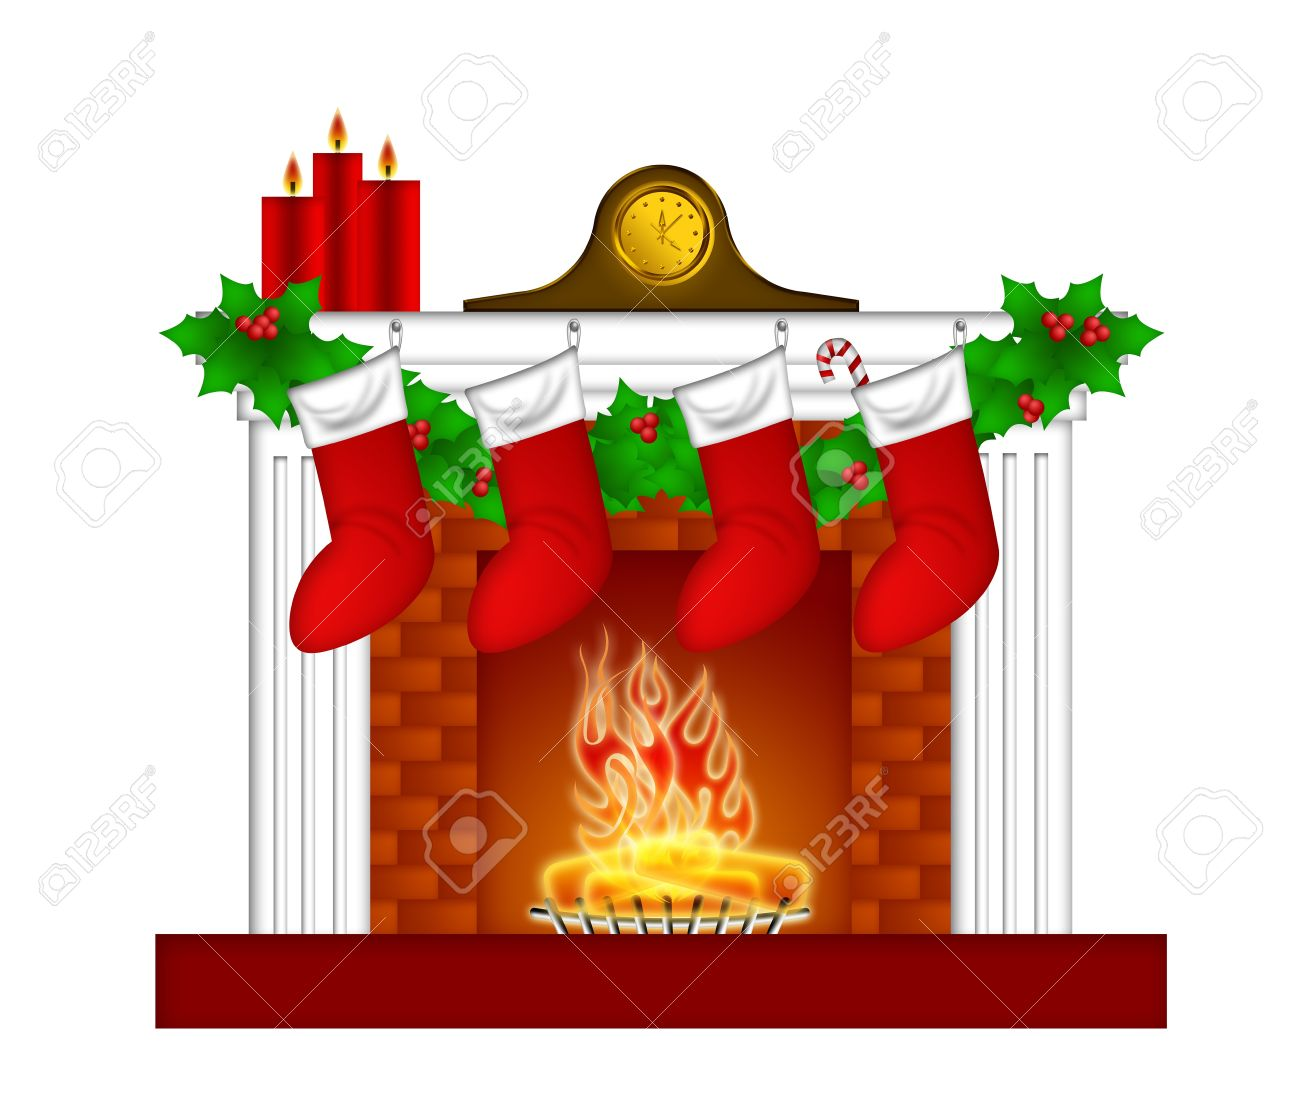 fireplace christmas decoration with garland stocking pillar candles rh 123rf com  christmas tree and fireplace clipart